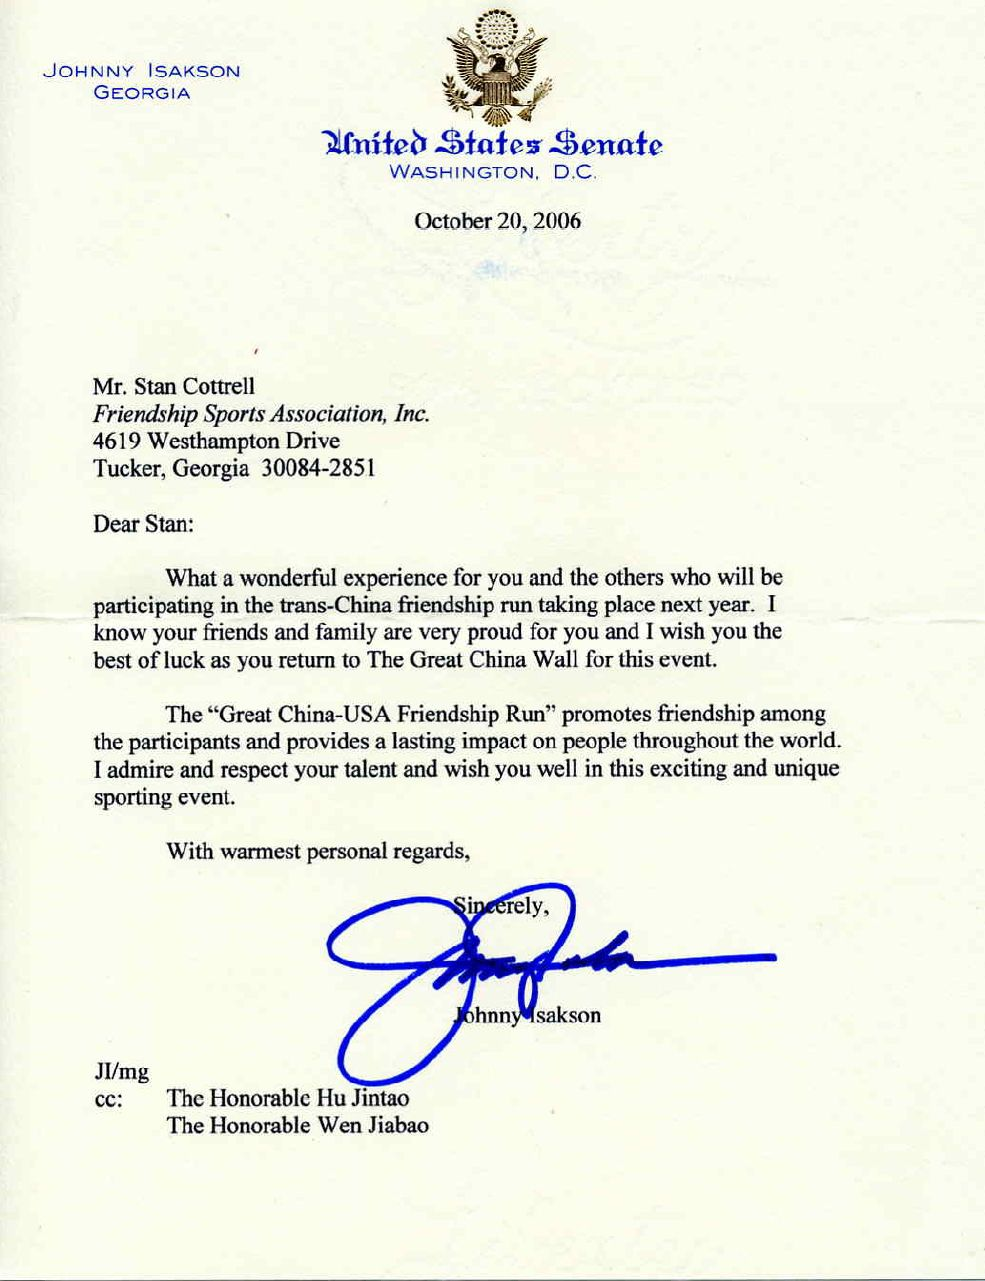 Senator Johnny IsacksonS Letter To Stan Cottrell With Admiration